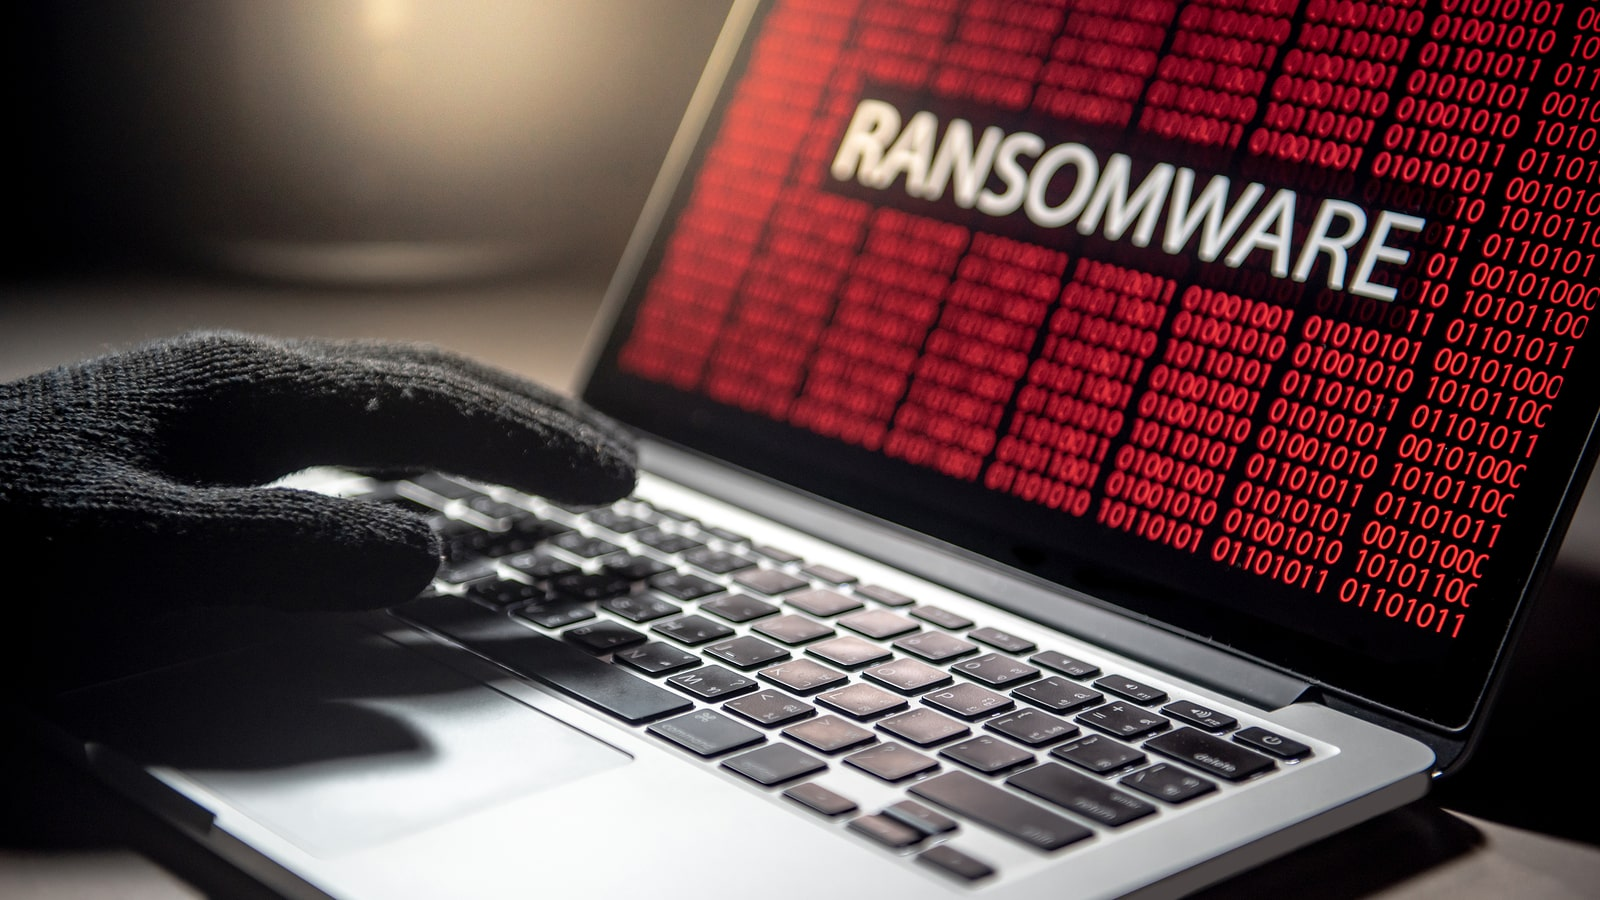 WannaCry ransomware attack cost the National Health Service (NHS) over $100 million